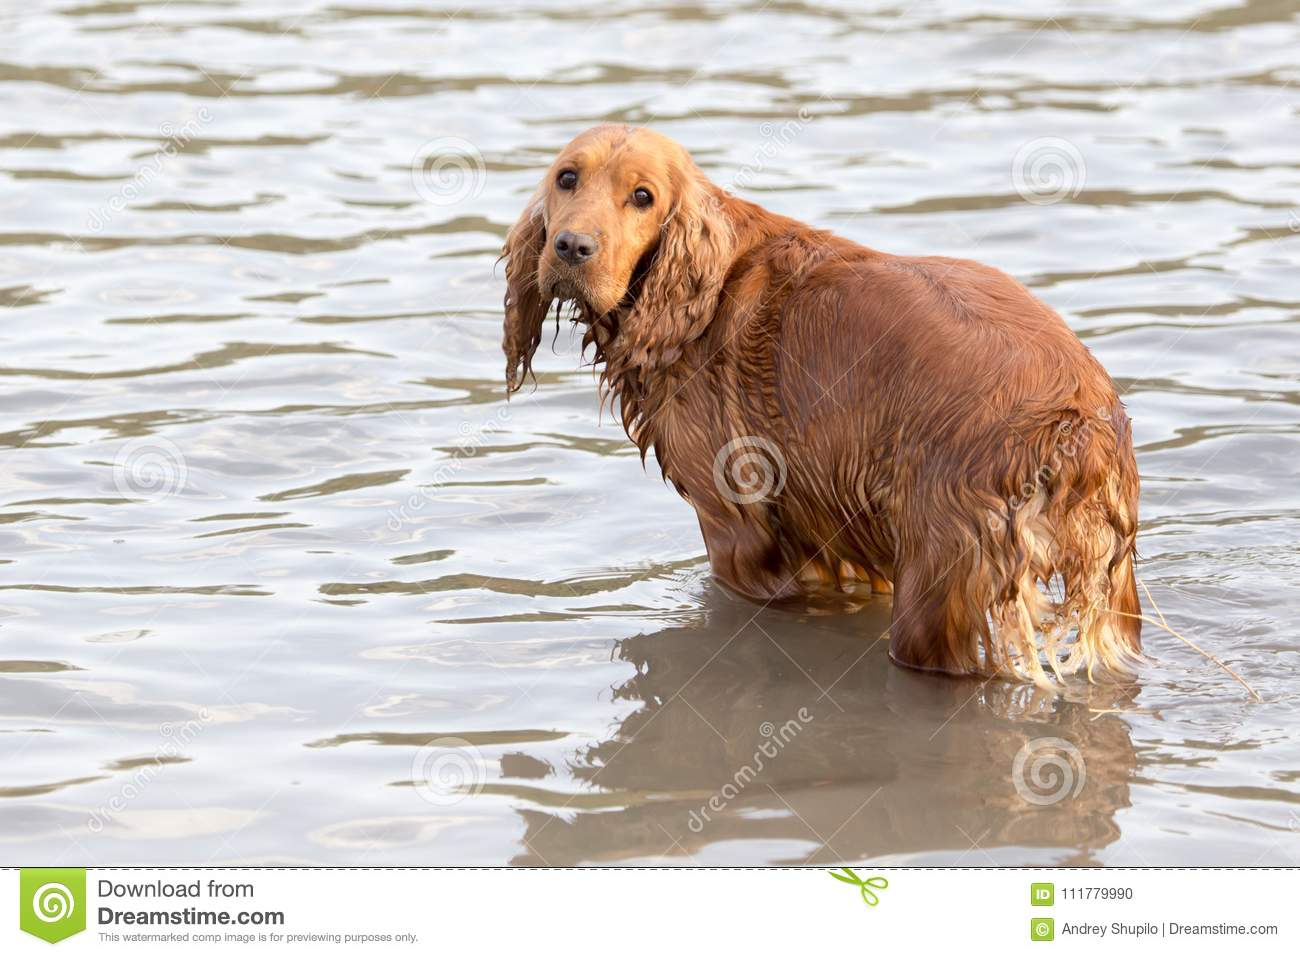 Dog in water Nature